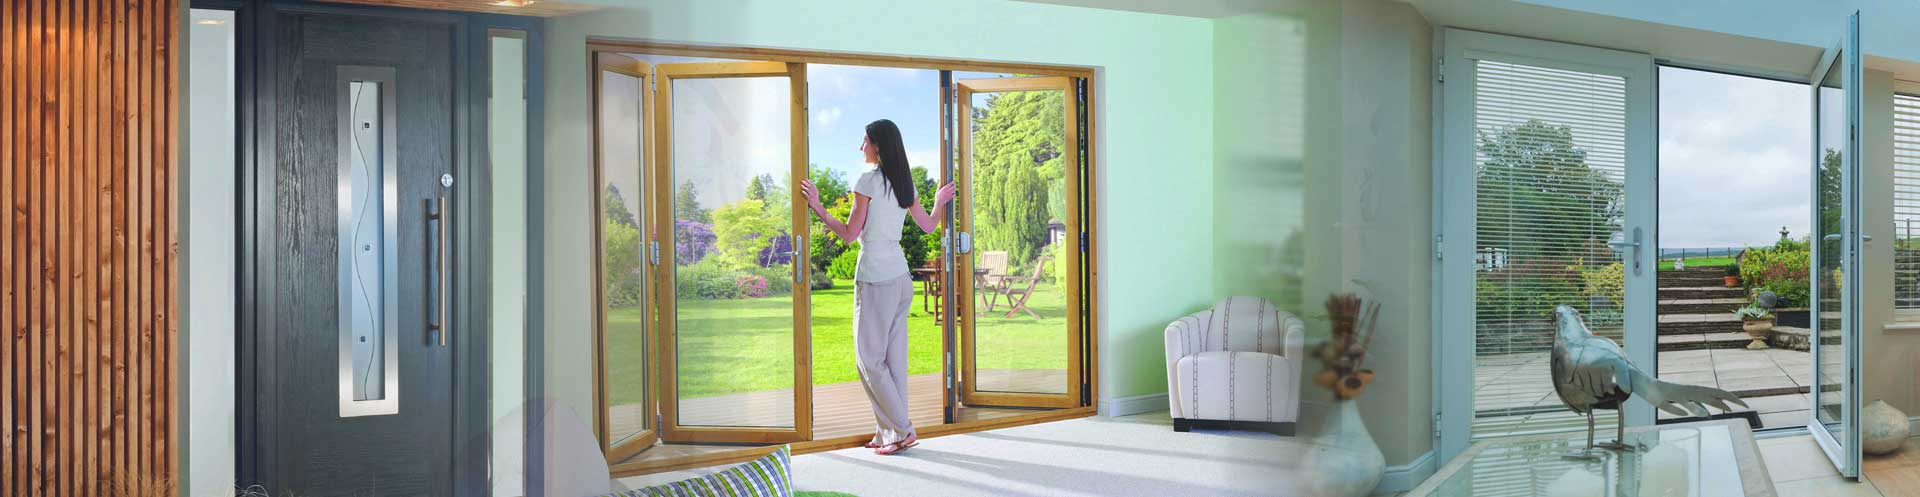 Aluminium Sliding Patio Doors Turkington Windows Conservatories